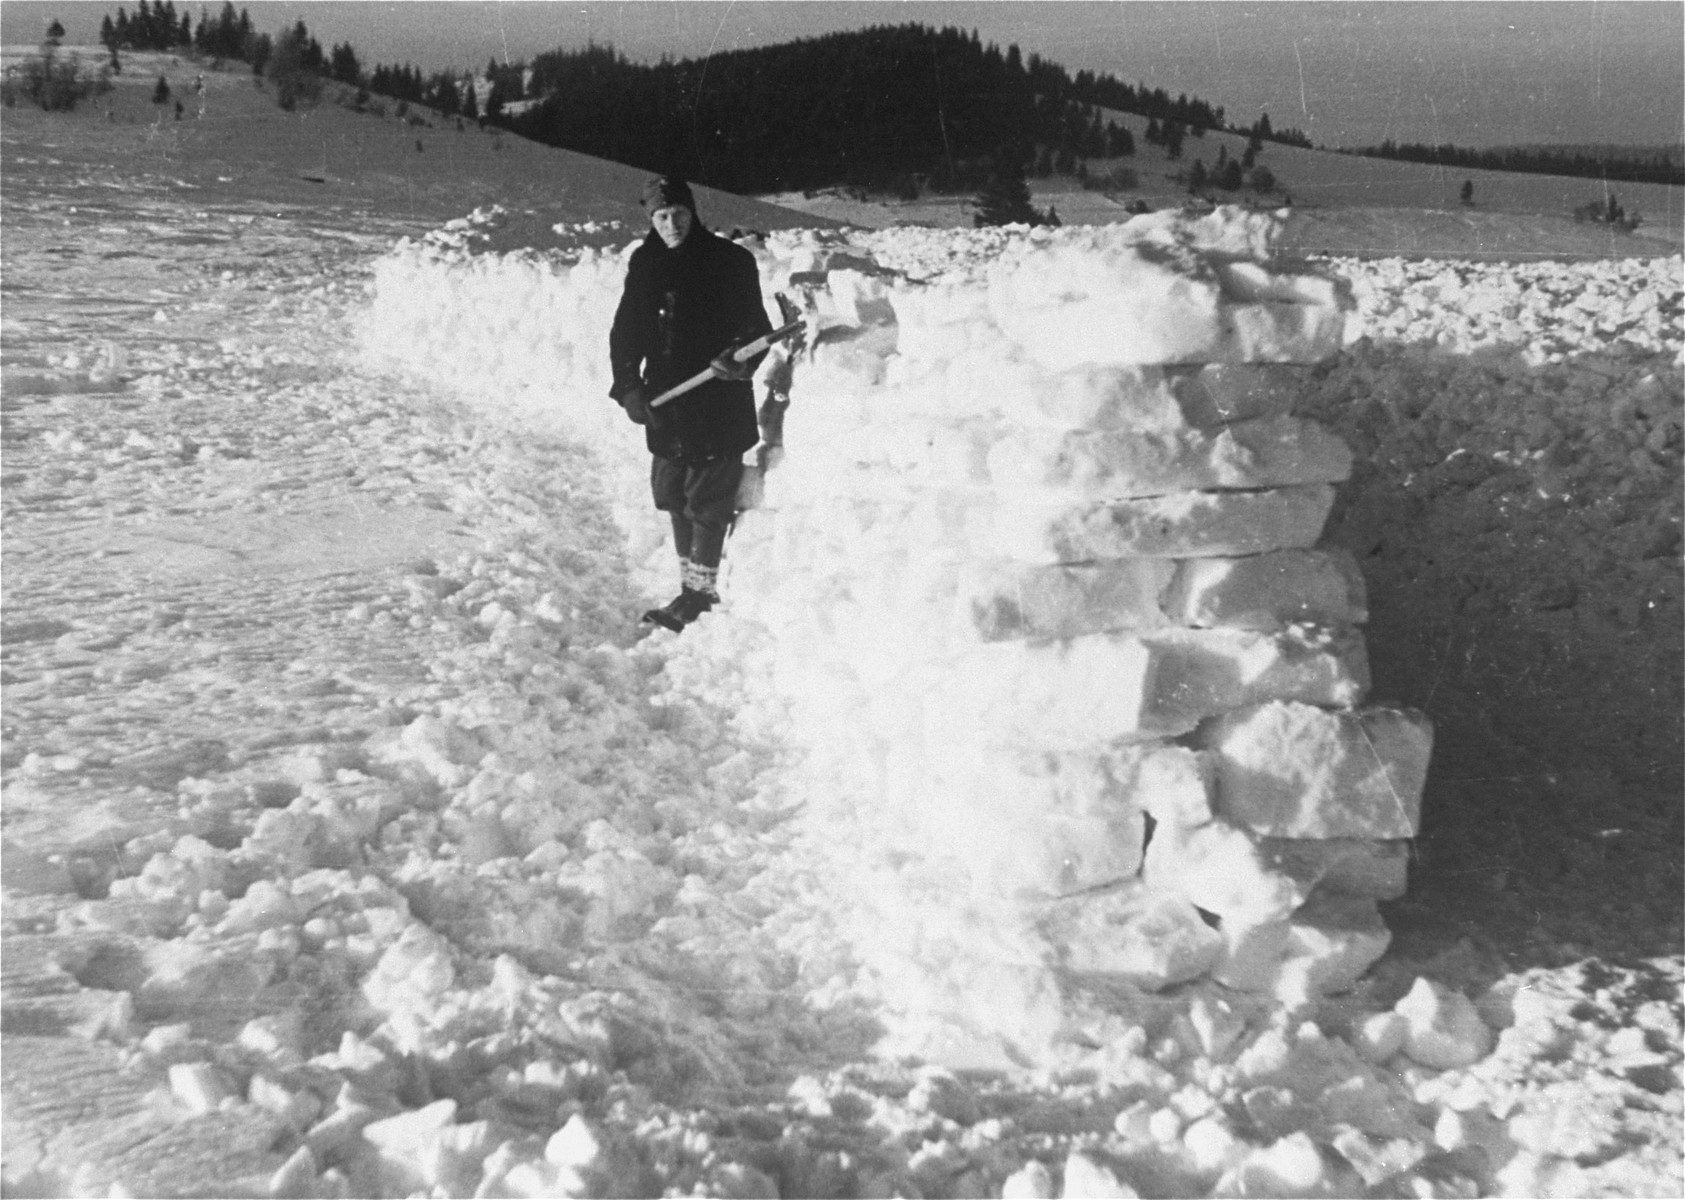 A Jewish conscript, in Company 108/57 of the Hungarian Labor Service, at forced labor constructing a barricade to prevent snow from drifting onto a road.